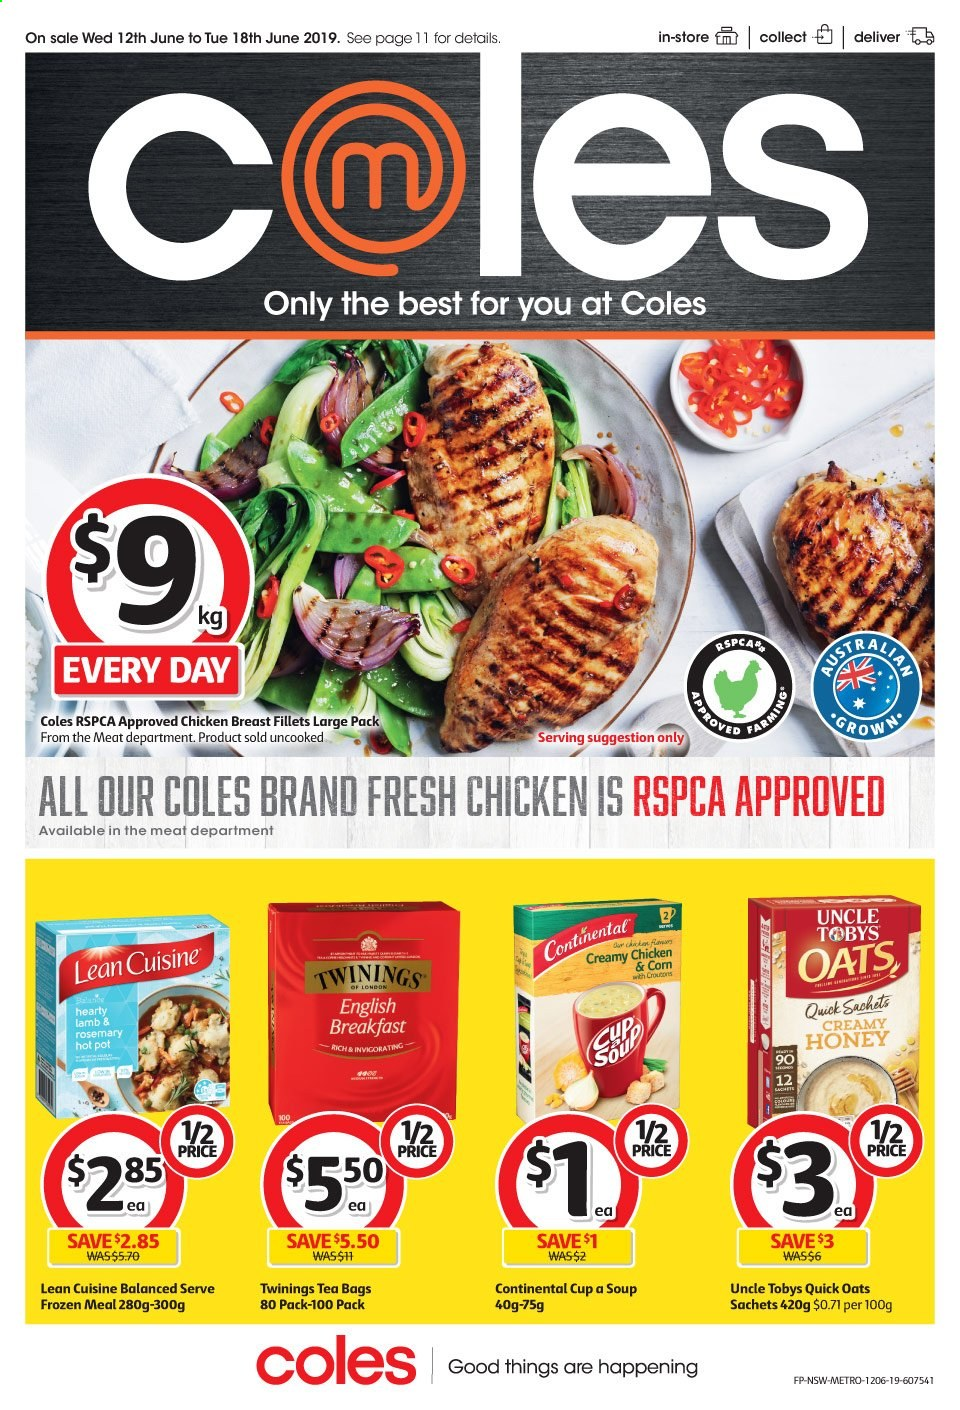 Coles catalogue and weekly specials 12 6 2019 - 18 6 2019 | Au